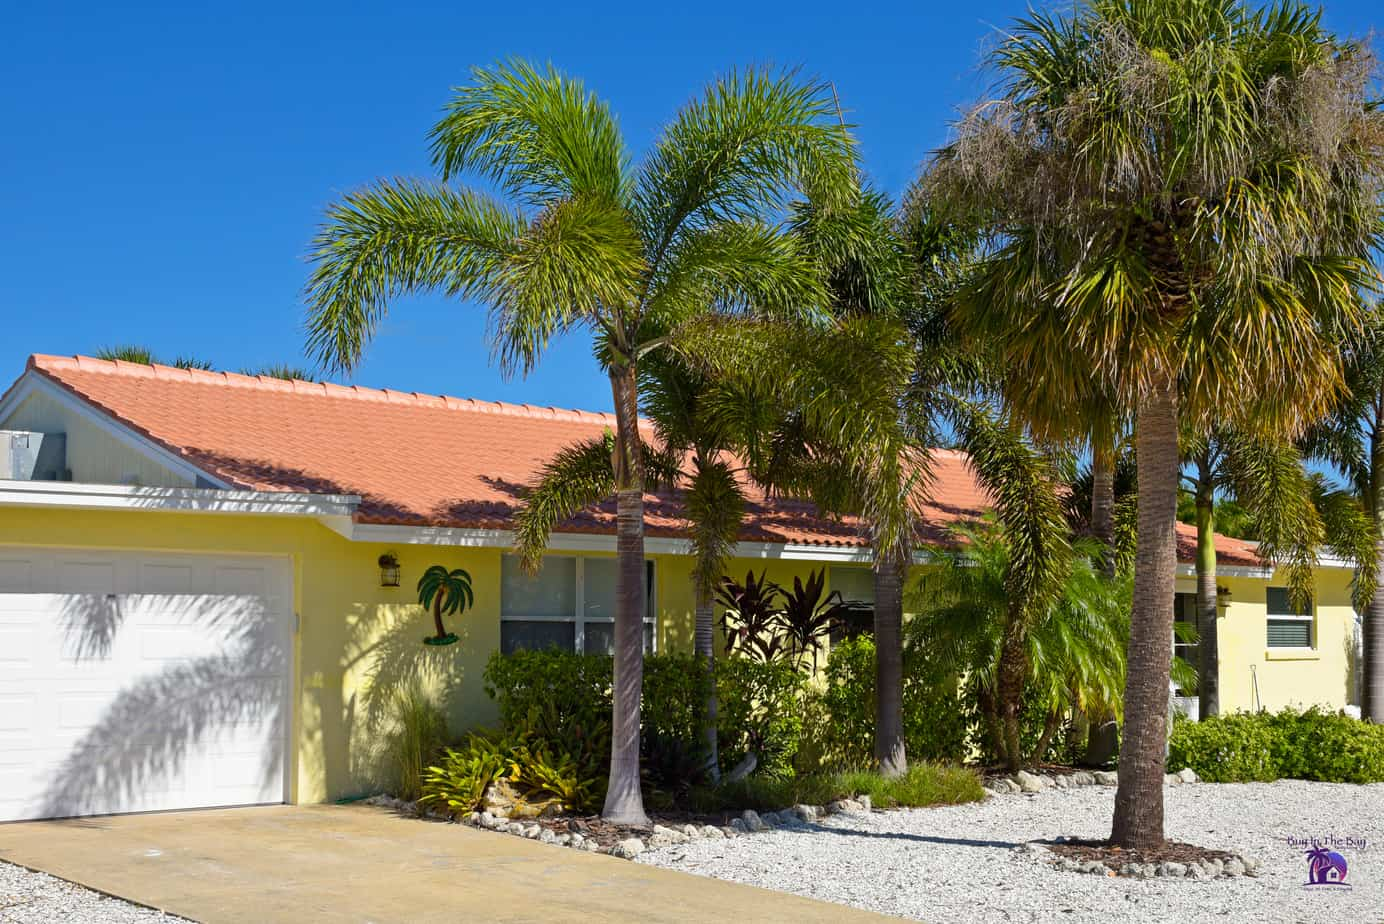 picture of a typical pinellas park home for sale in florida. home is yellow one story ranch with tan tile barrel roof and palm tree in front of home.